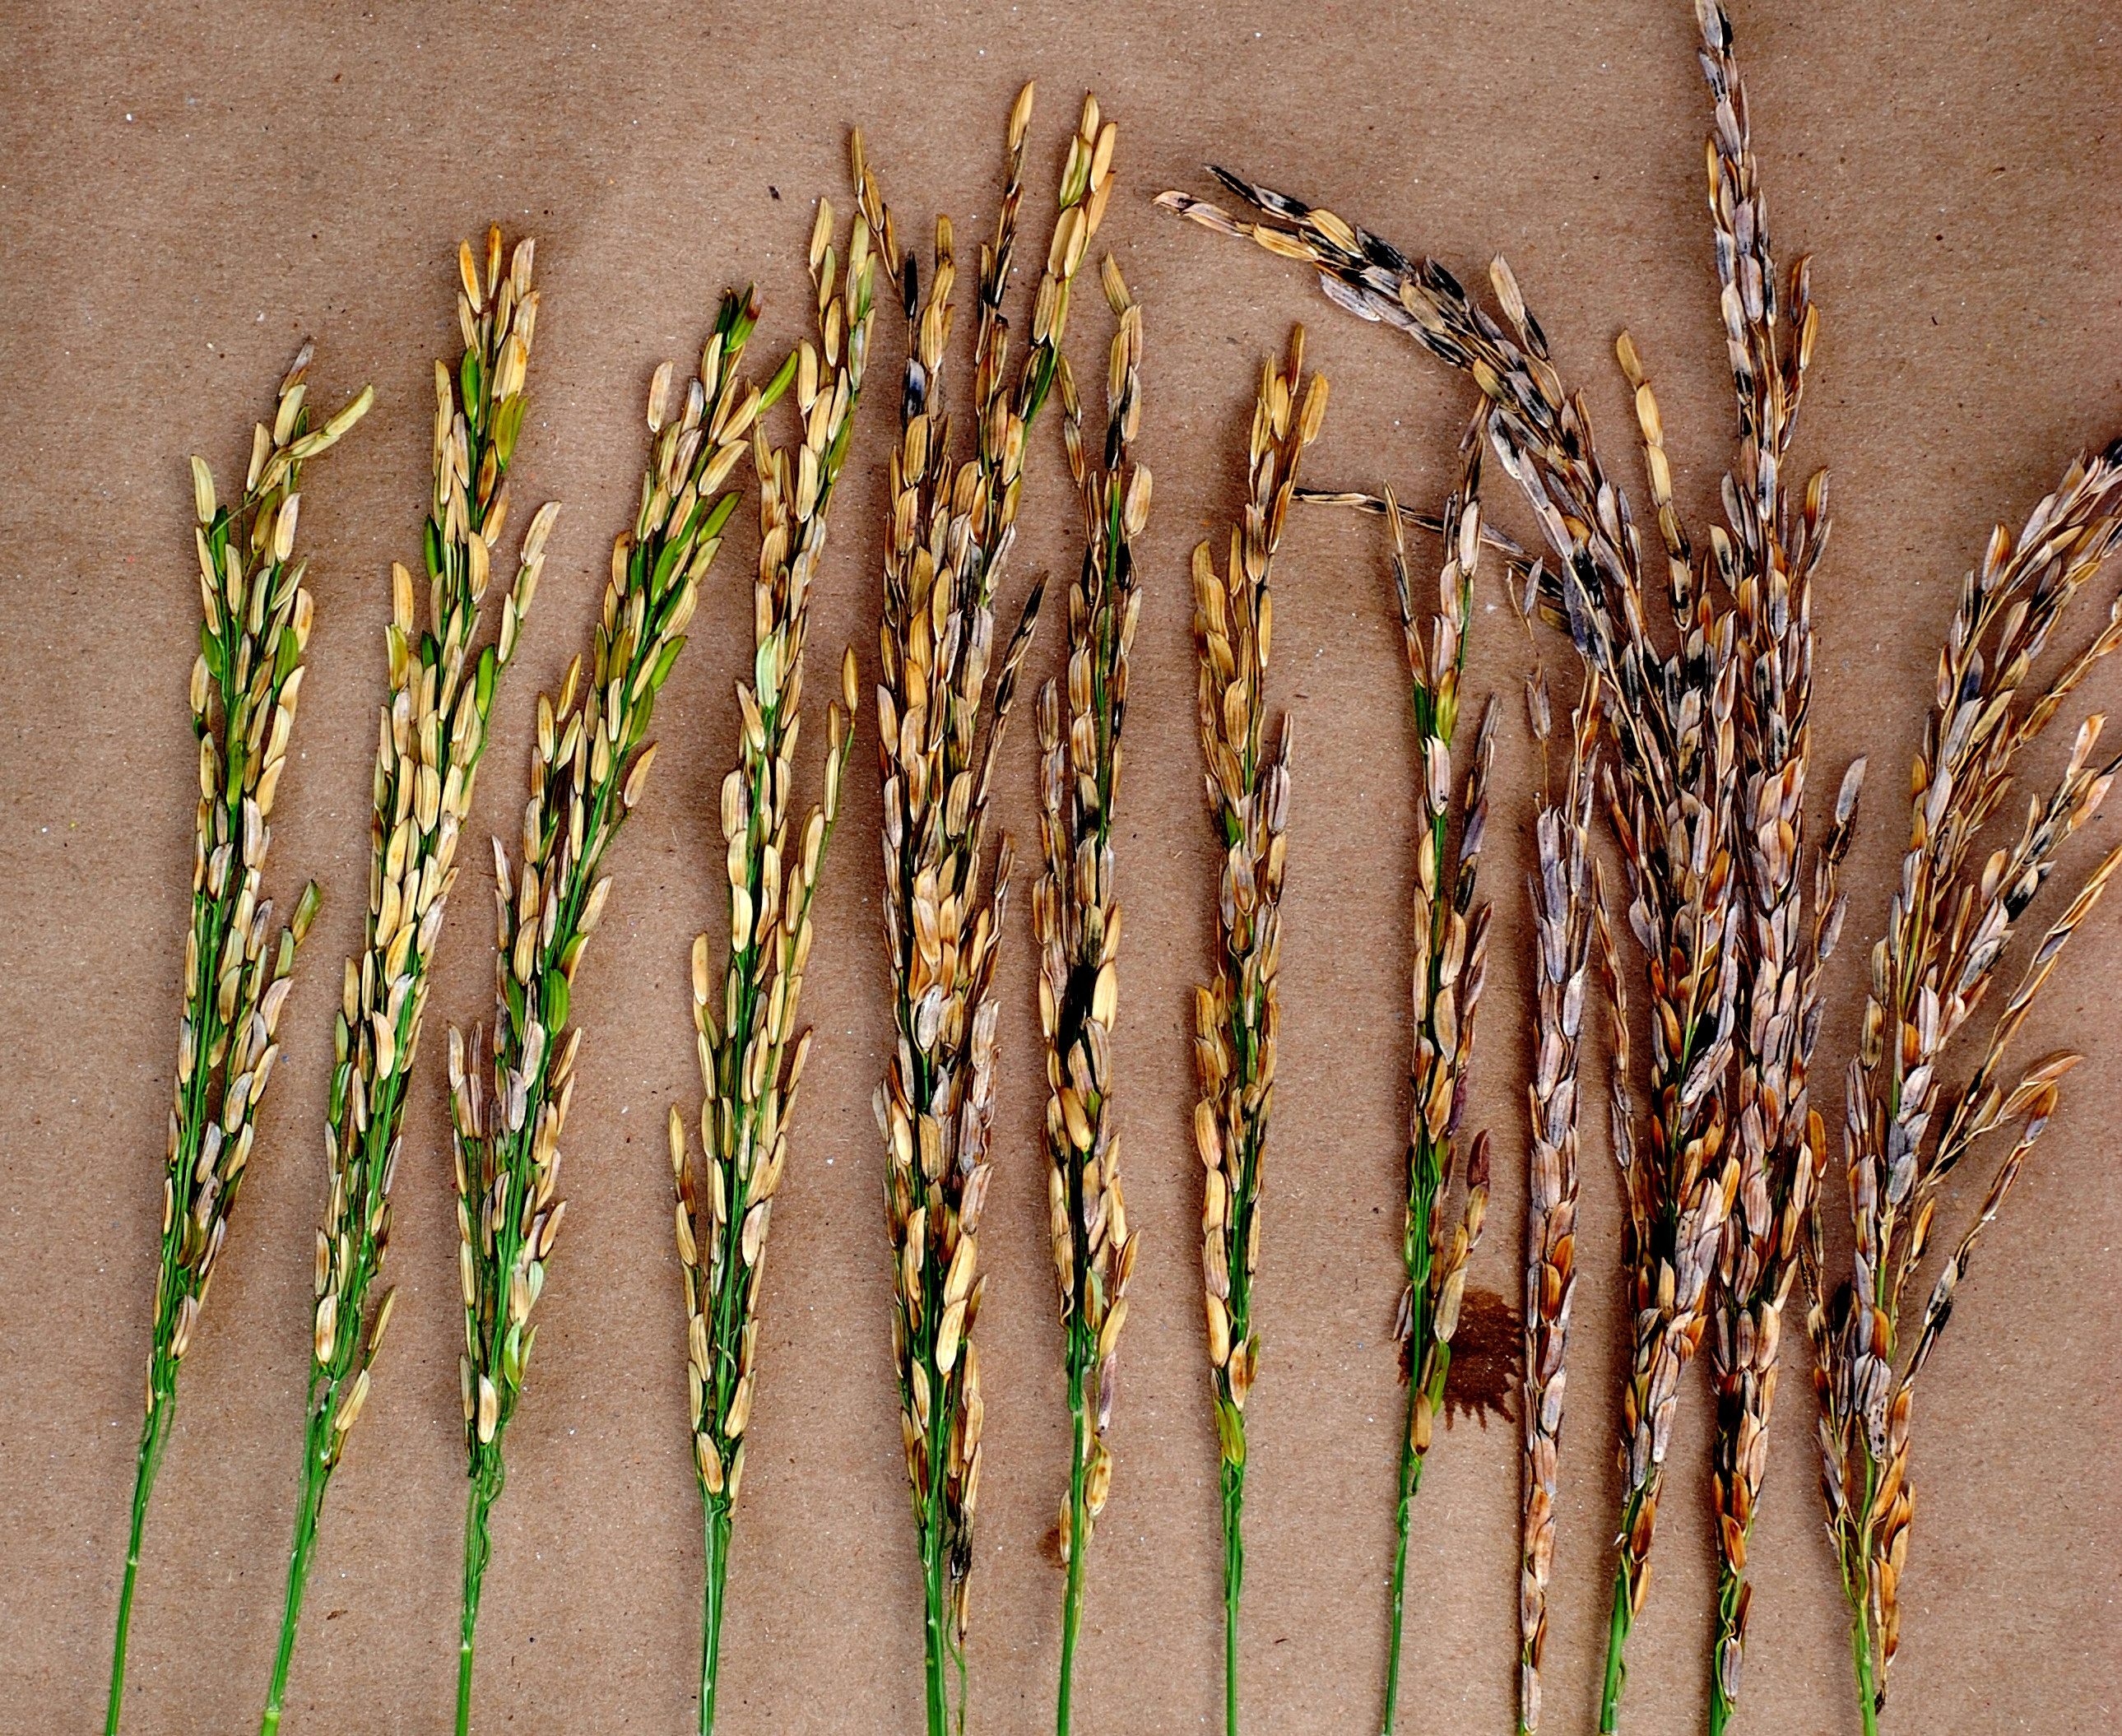 Symptoms of Bacterial Panicle Blight Infection